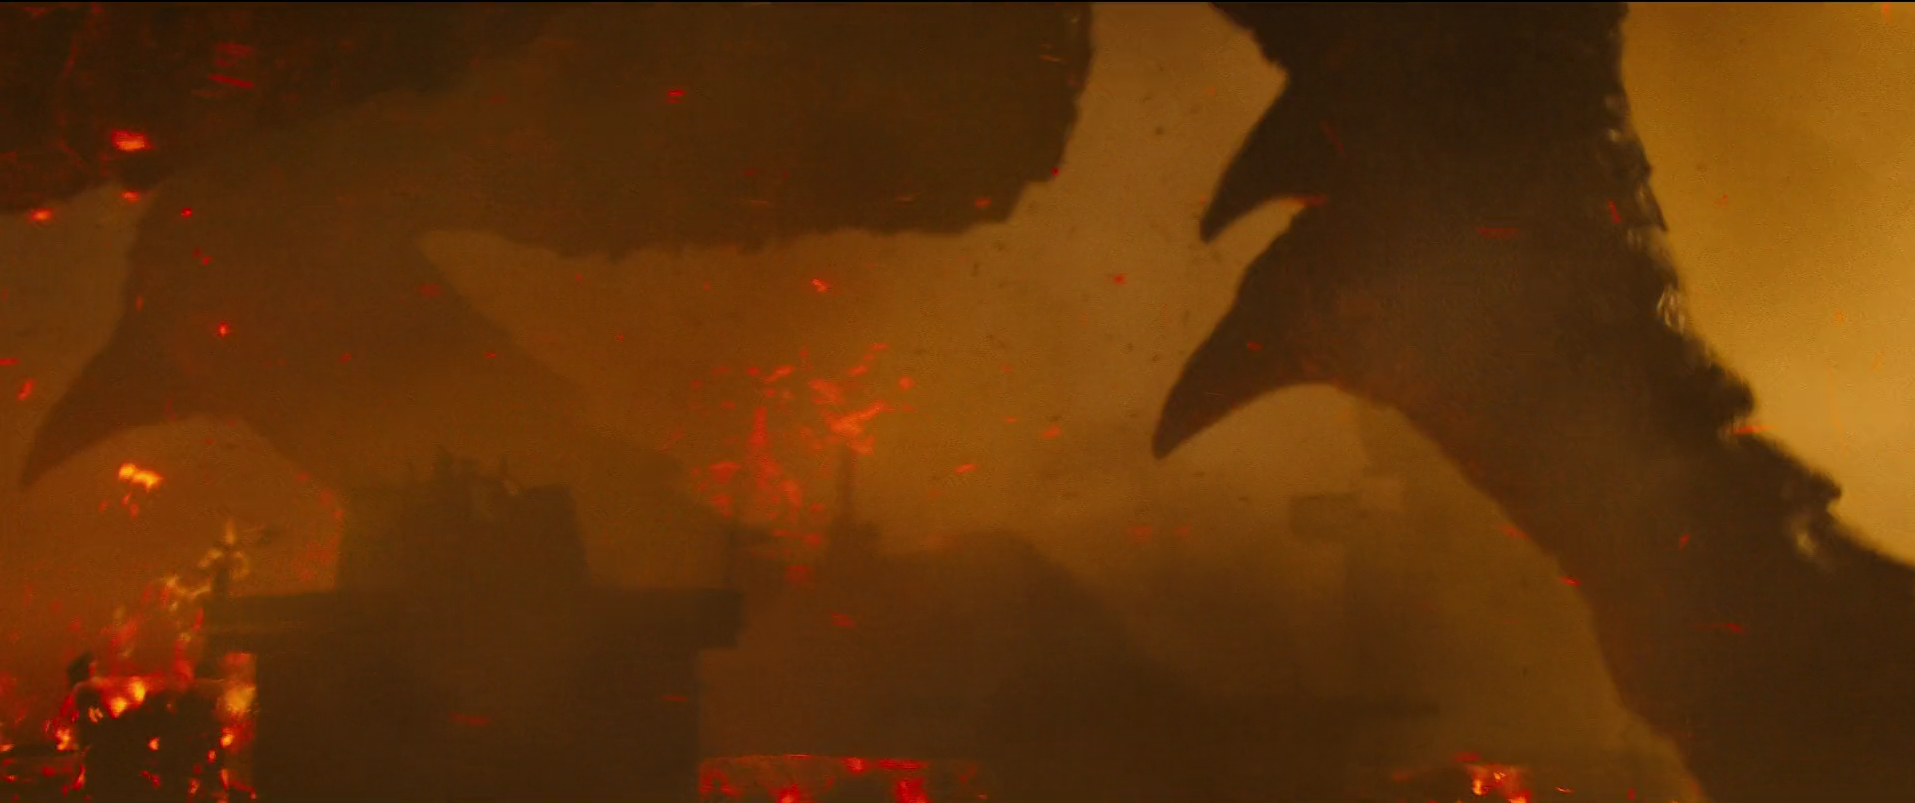 14 - Rodan steps out of his prison.png